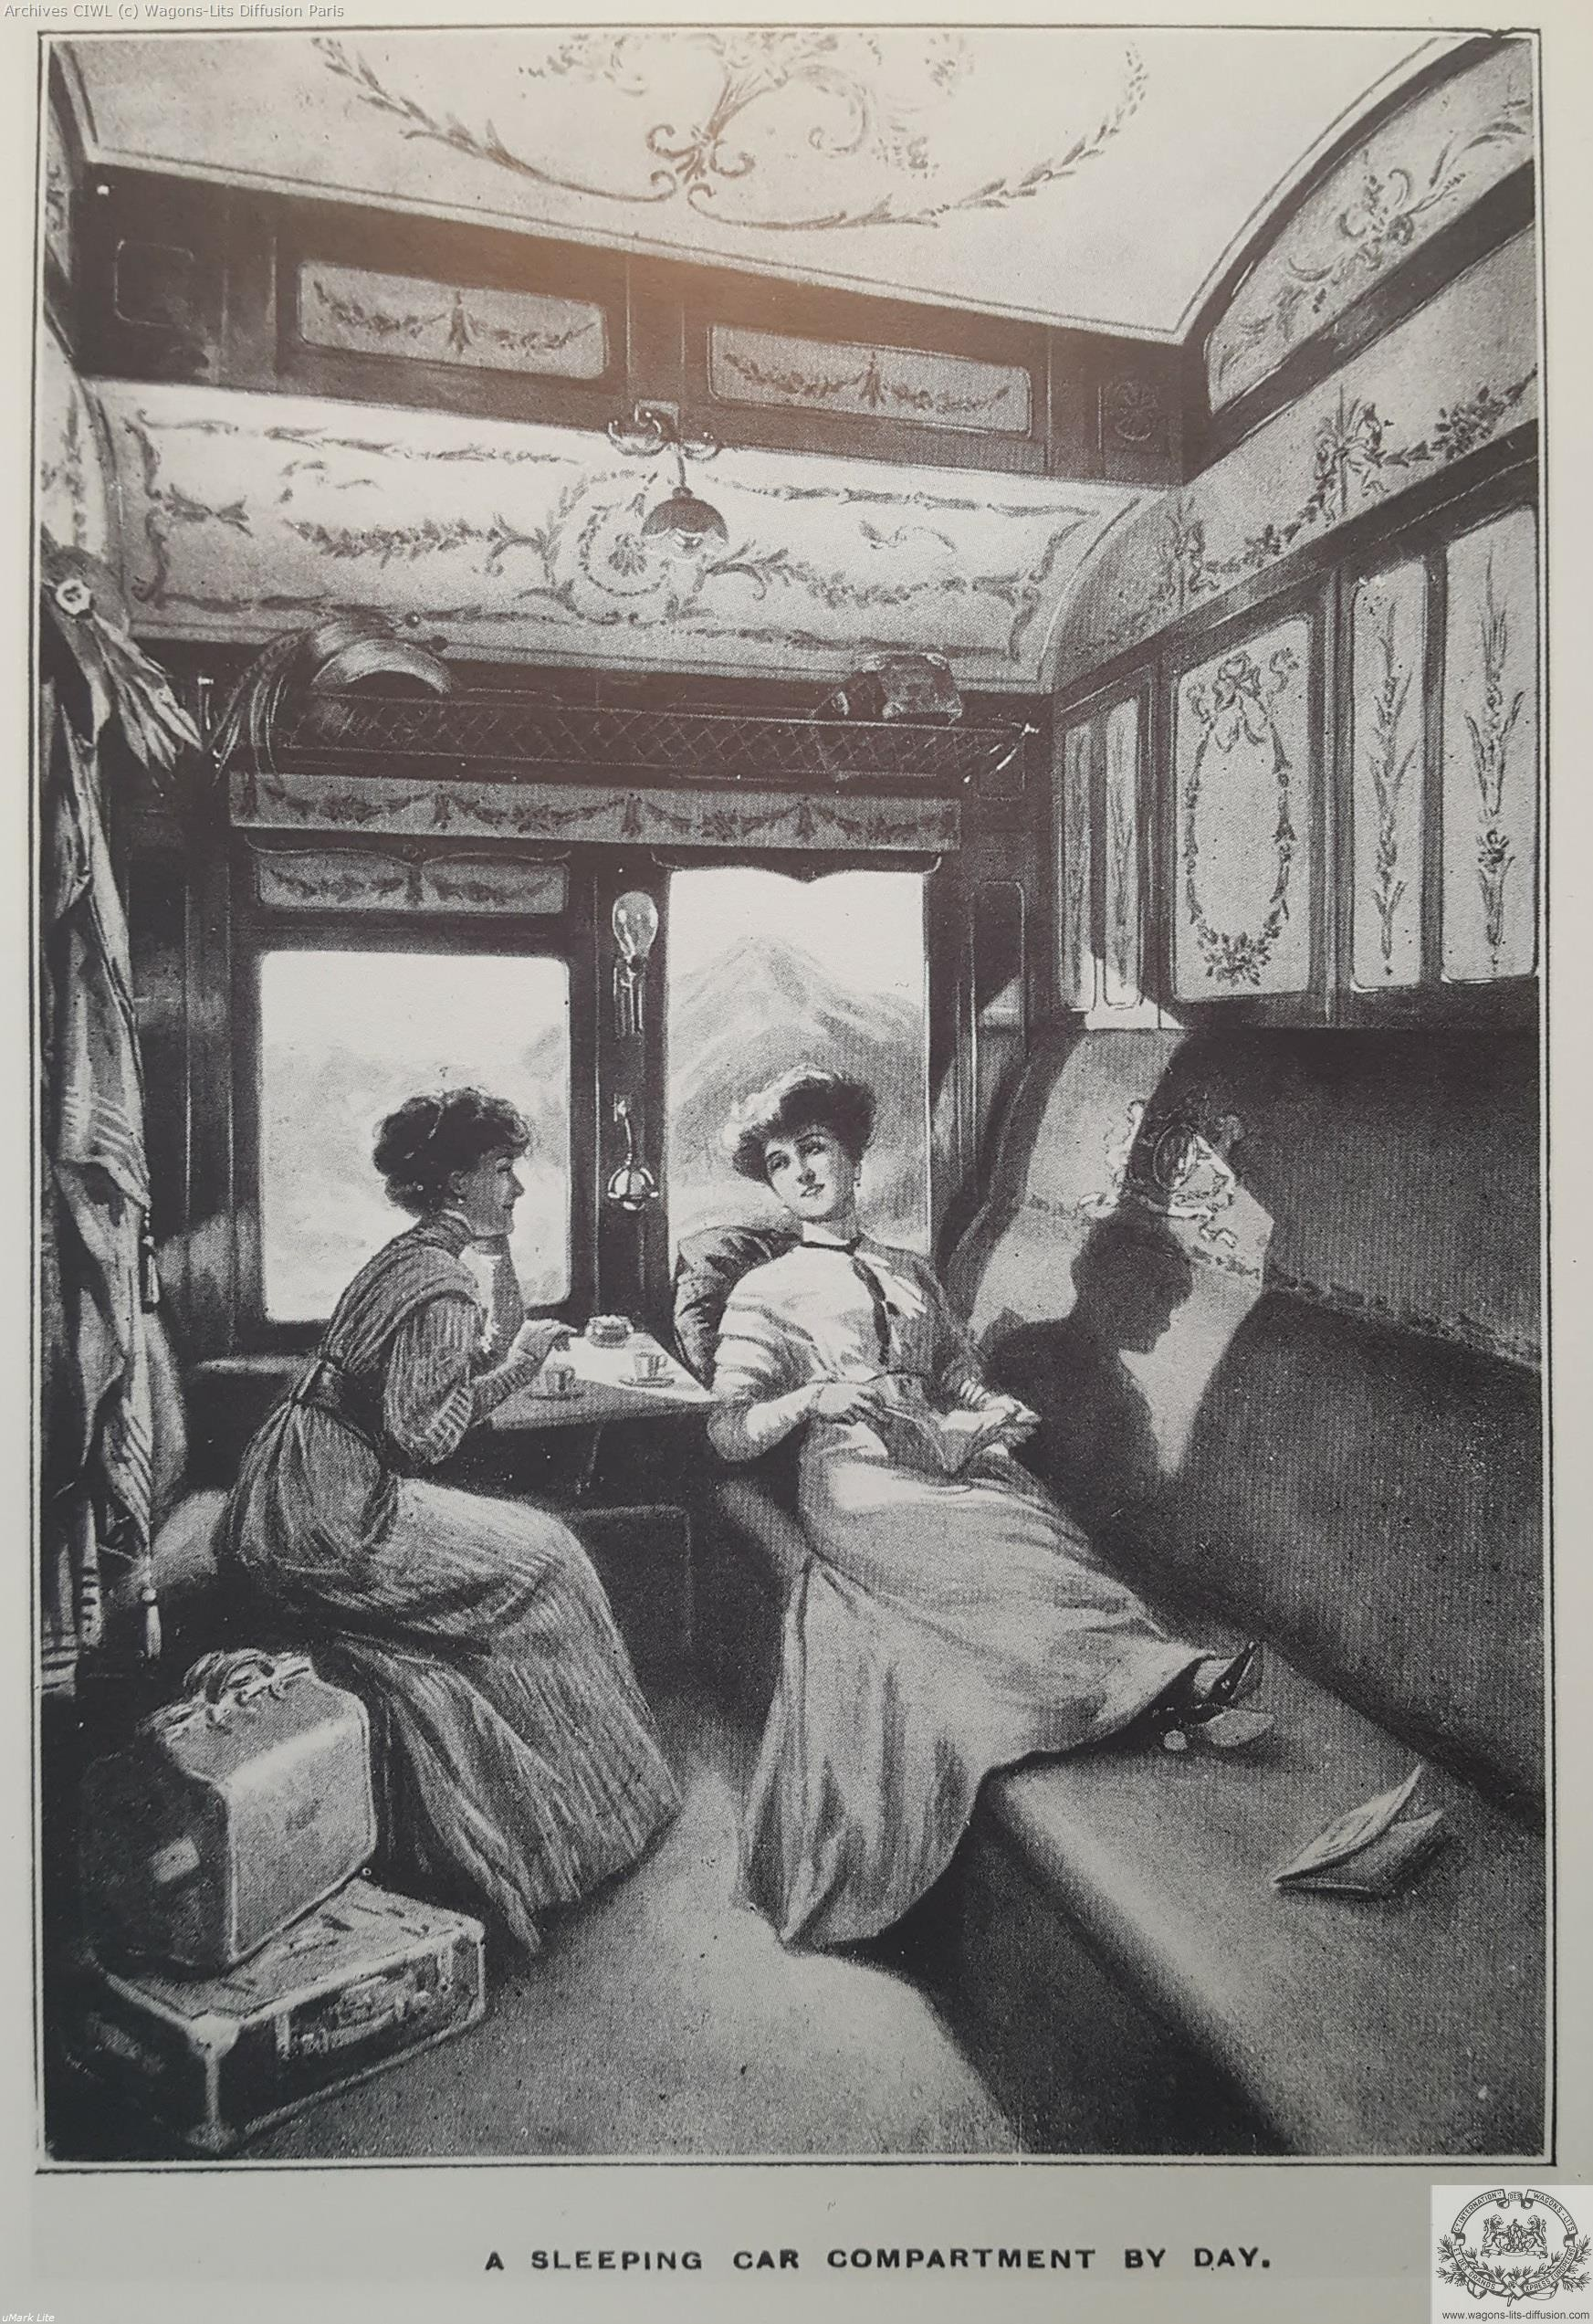 Wl a sleeping car compartment by day